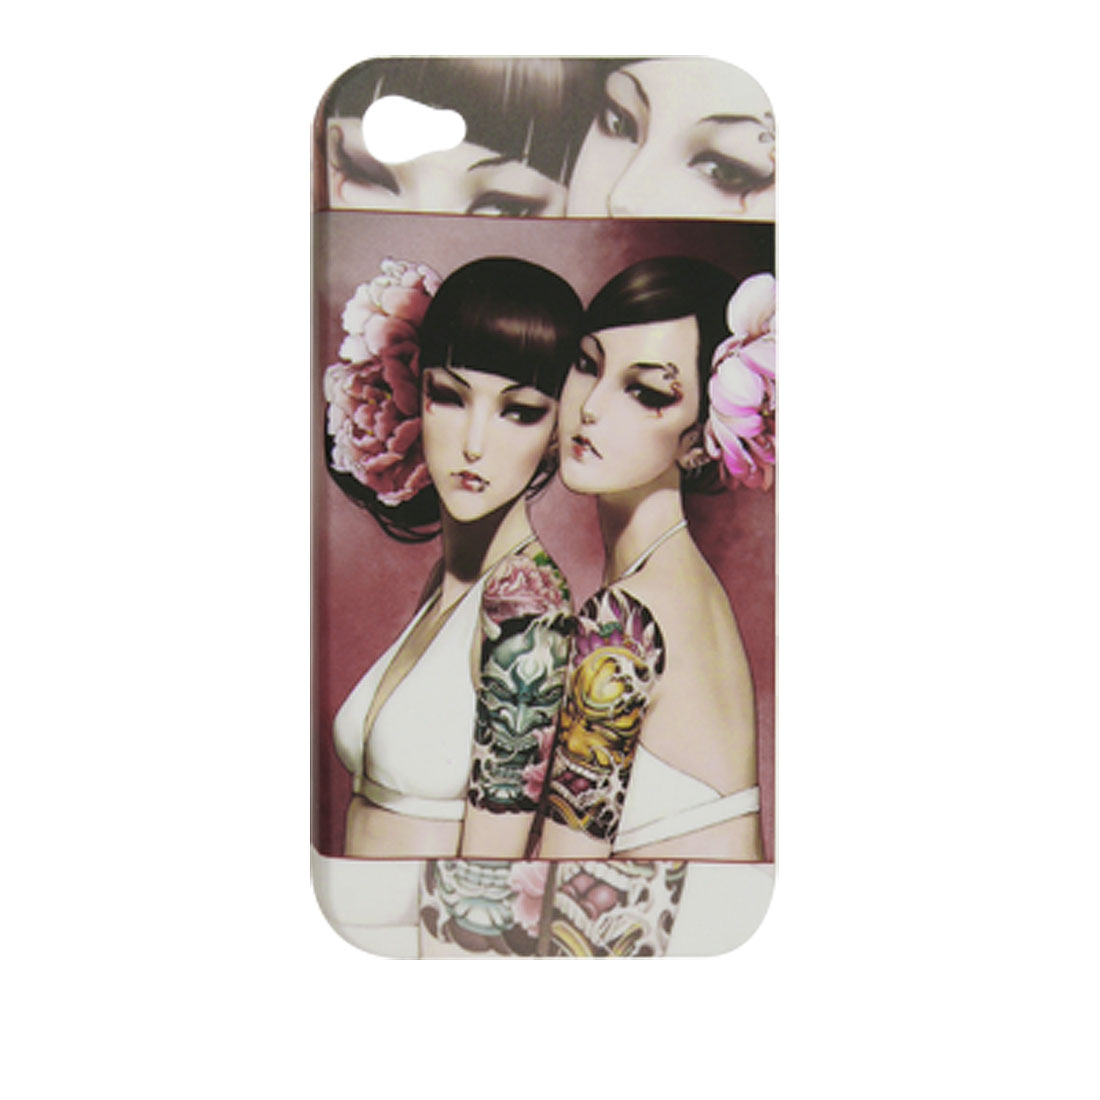 Twins Pattern Rubberized Plastic Cover for iPhone 4 4G